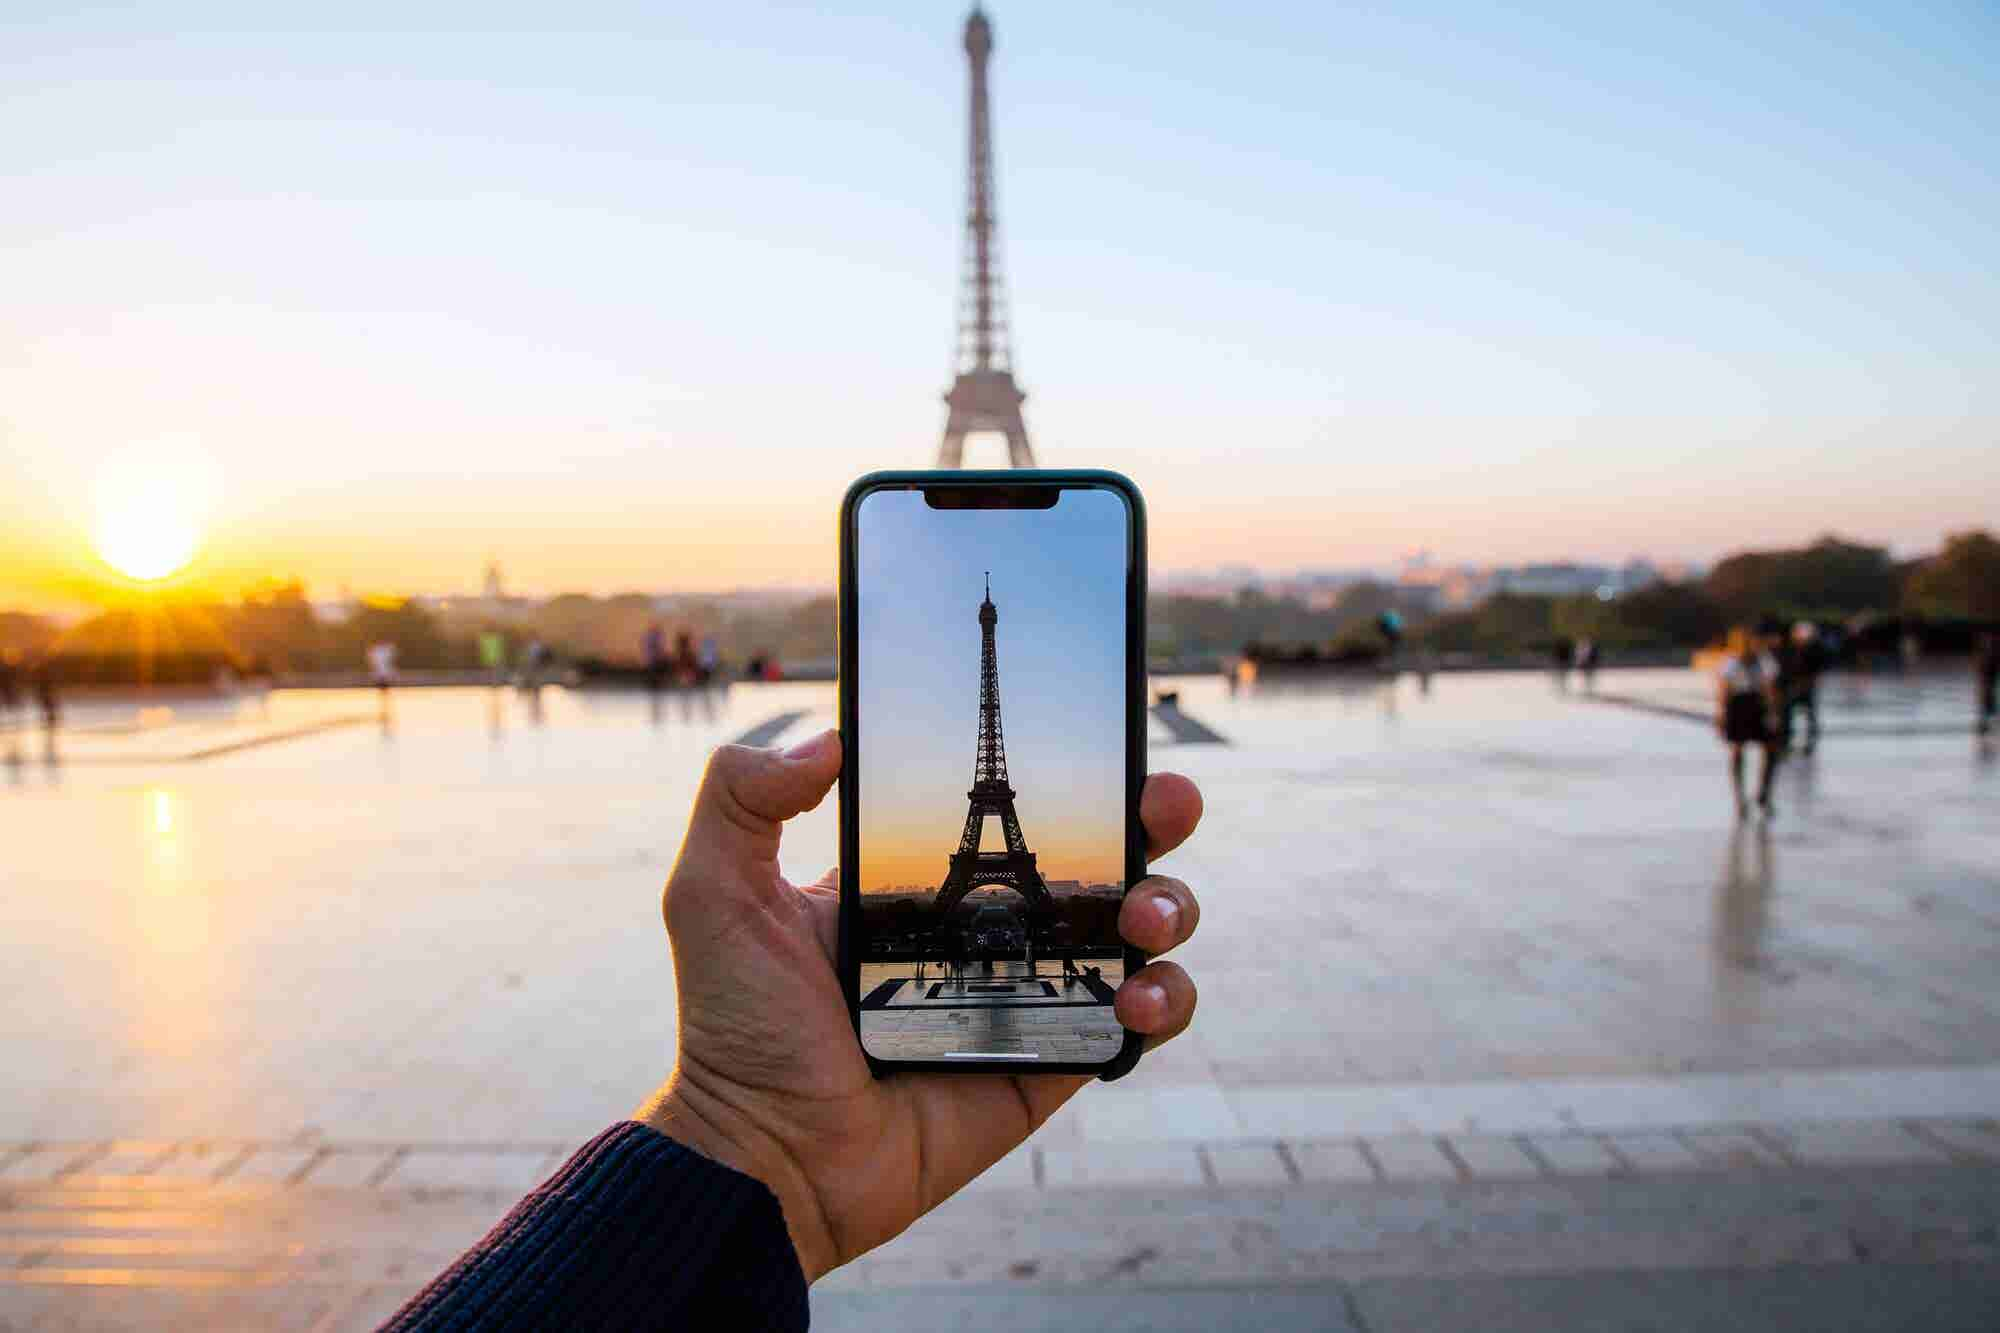 5 Phone Hacks for Travelers That Will Help Make Your Next Trip a Whole Lot Easier